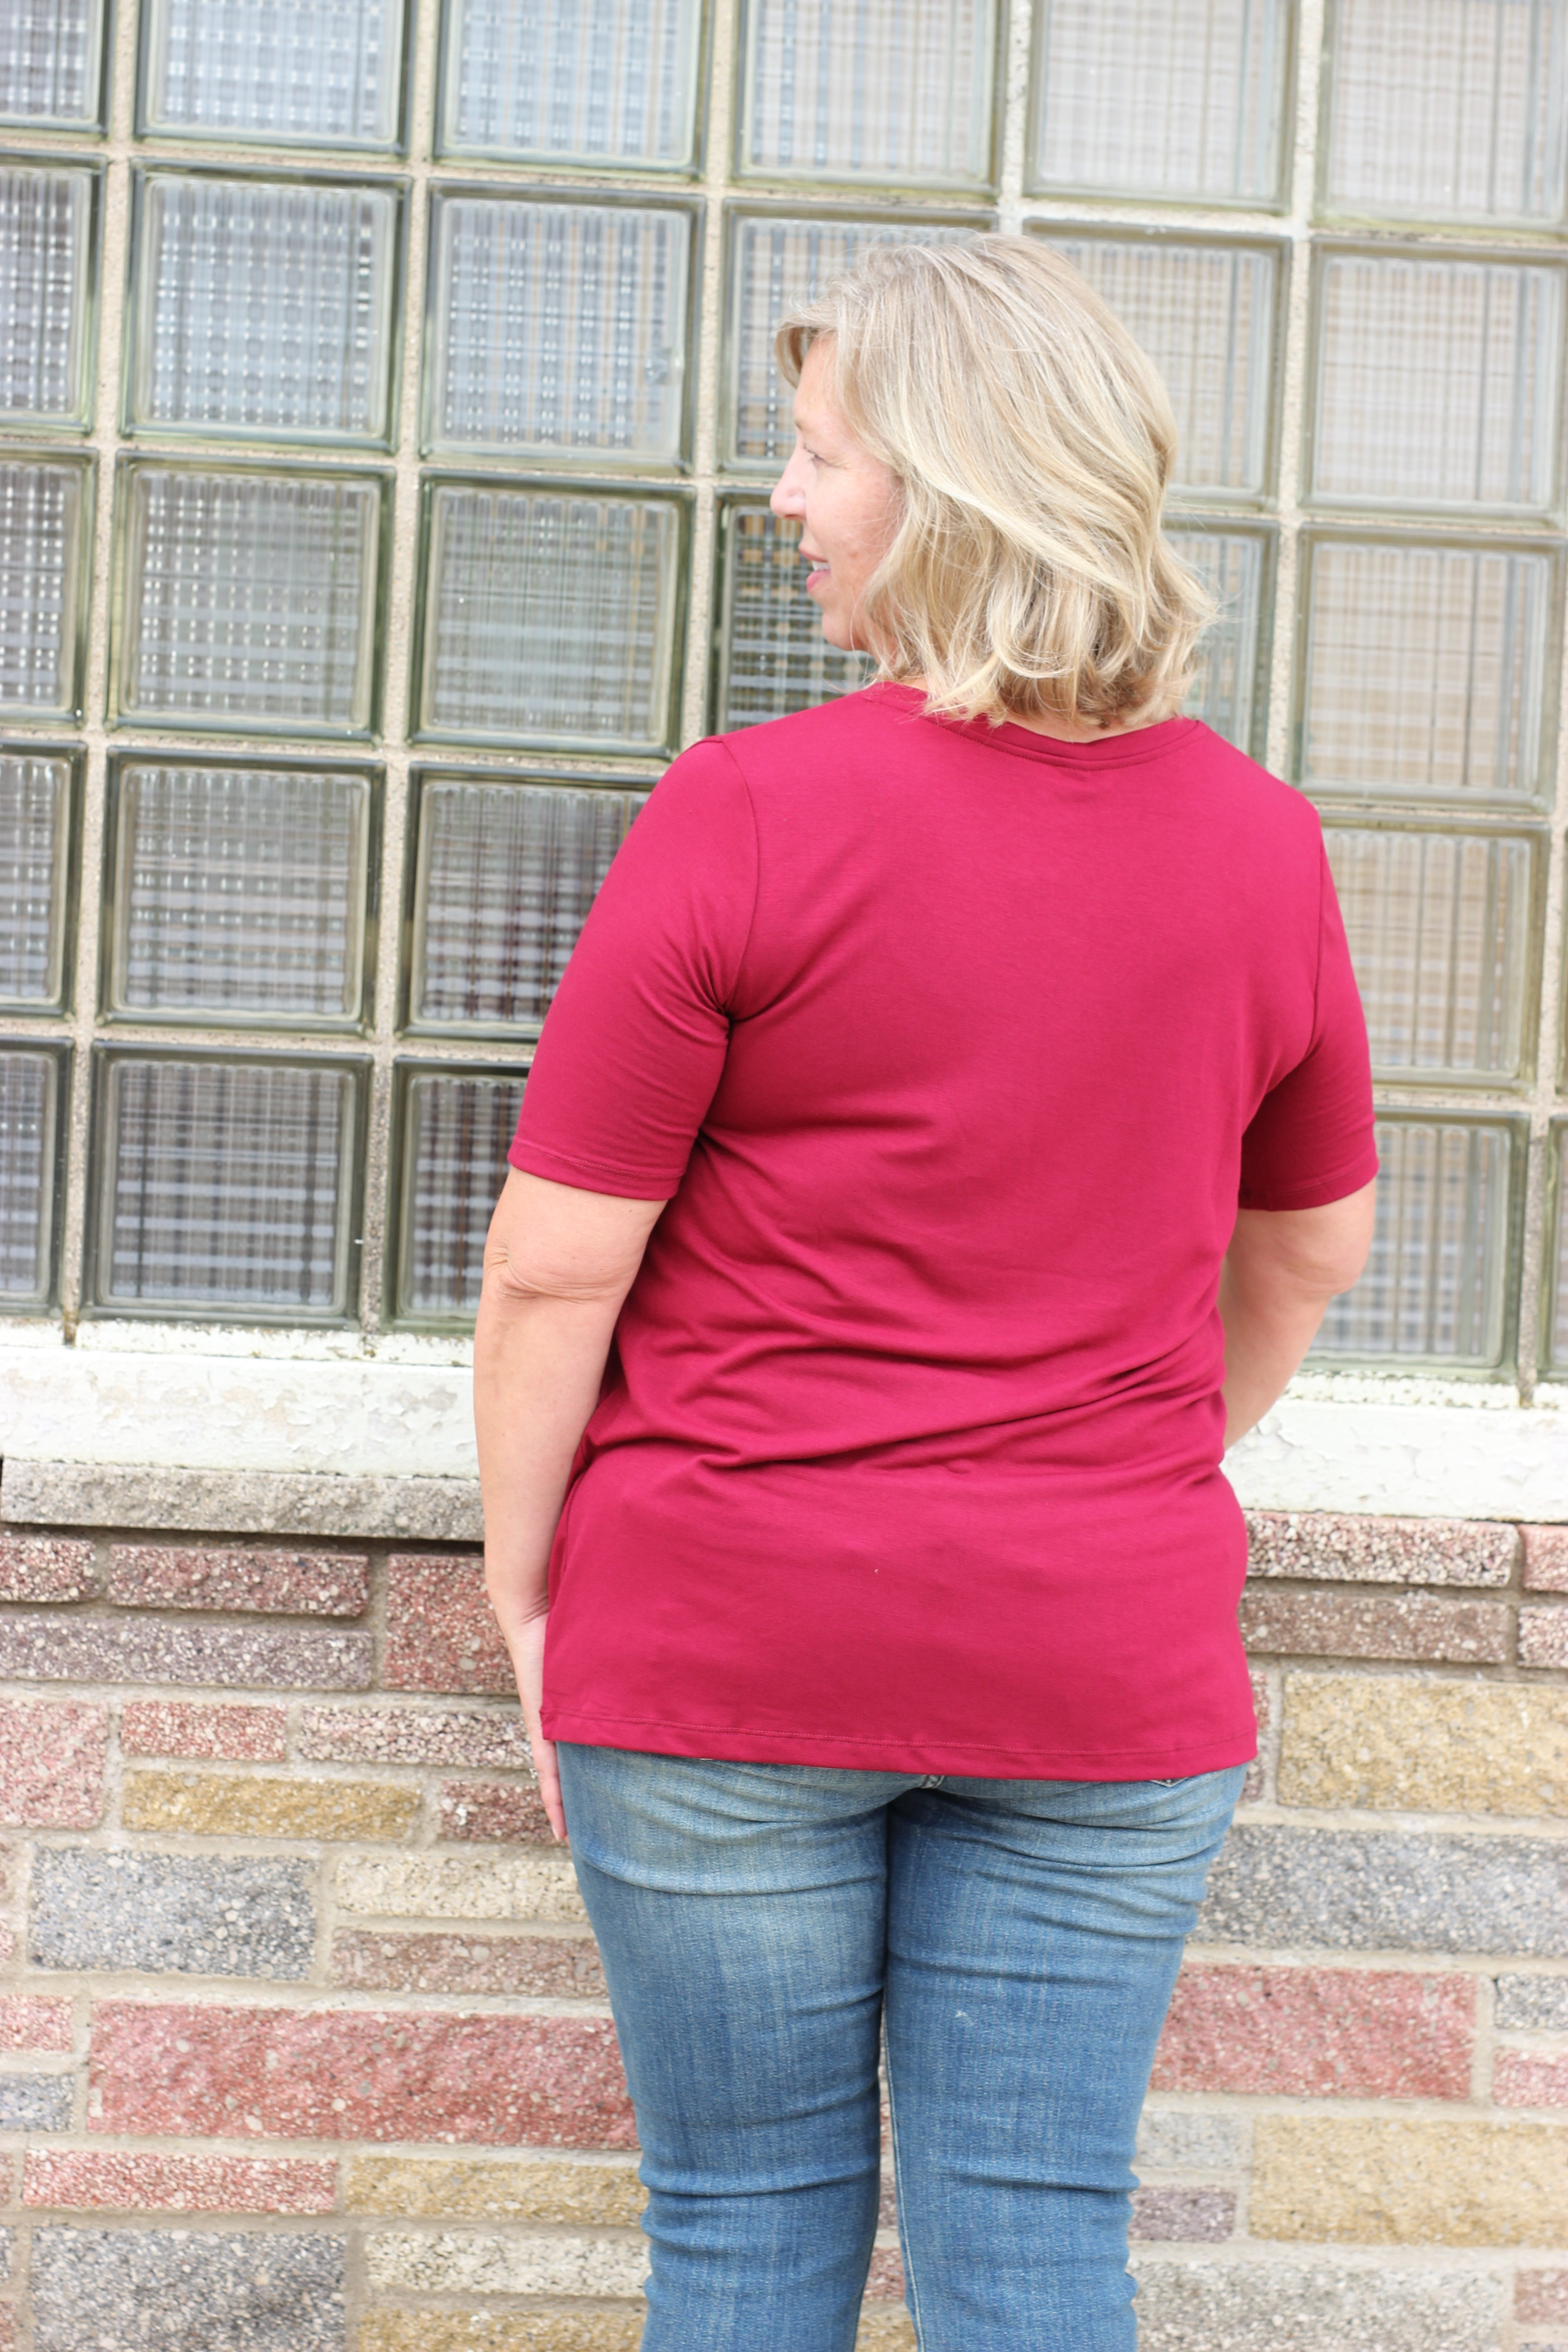 The Curvy Basic Top 3 - JQ Clothing Co. - Oakes ND